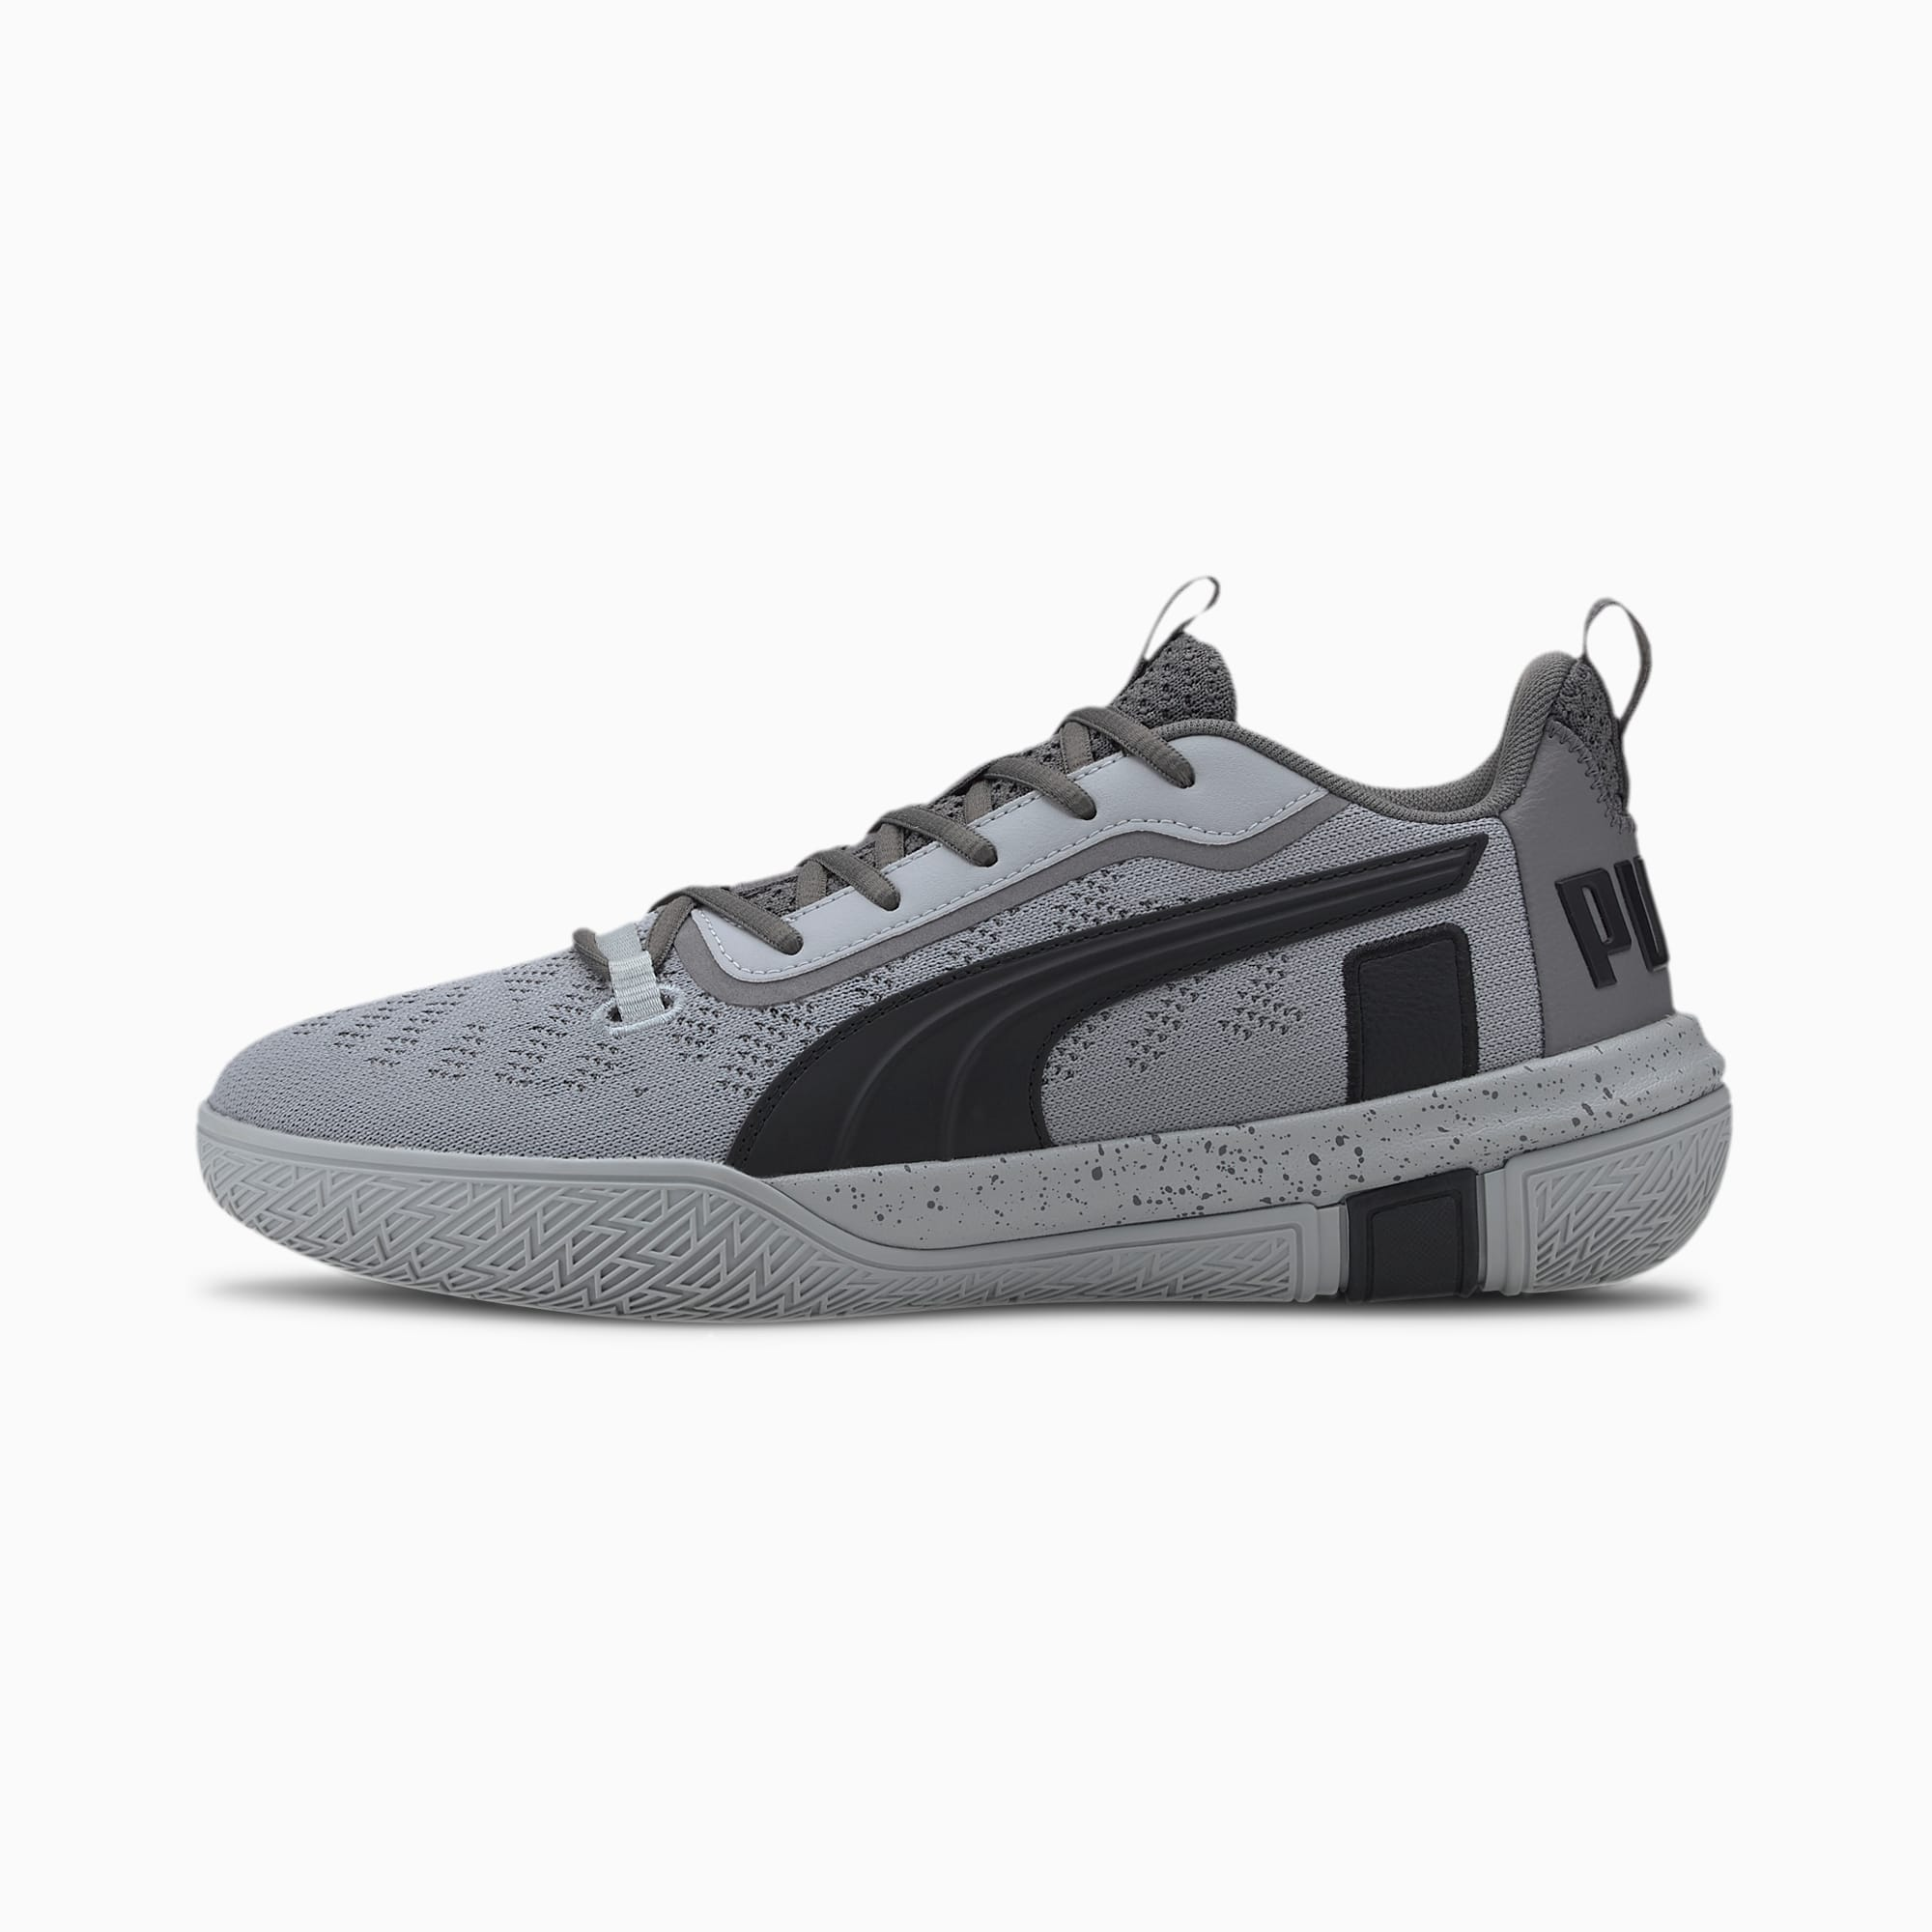 Legacy Low Men's Basketball Shoes